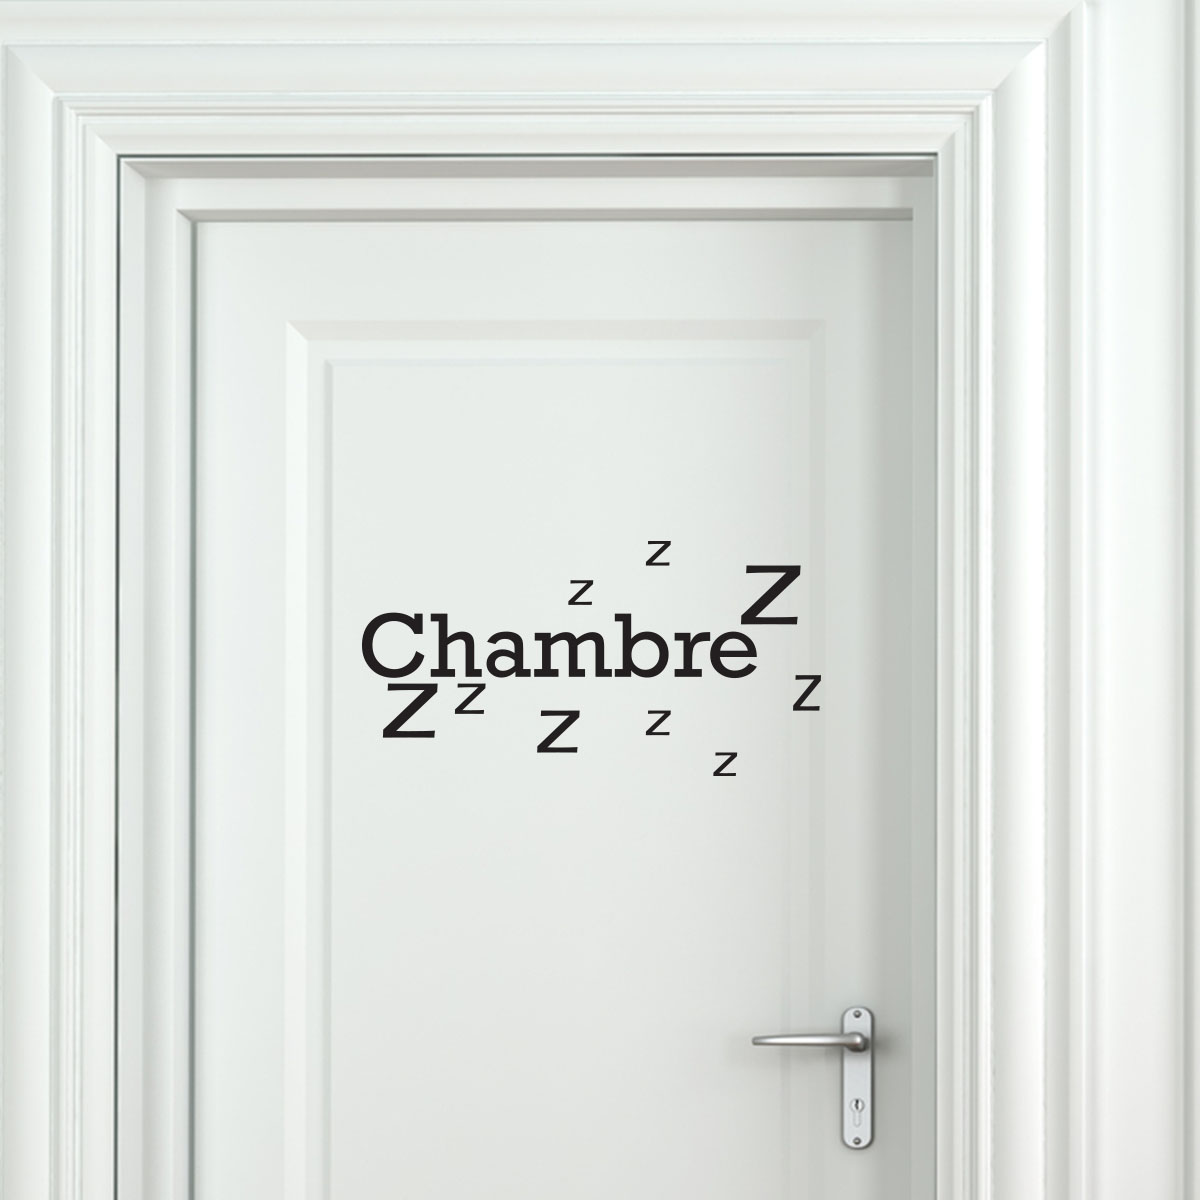 sticker porte chambre zzz stickers chambre texte ambiance sticker. Black Bedroom Furniture Sets. Home Design Ideas